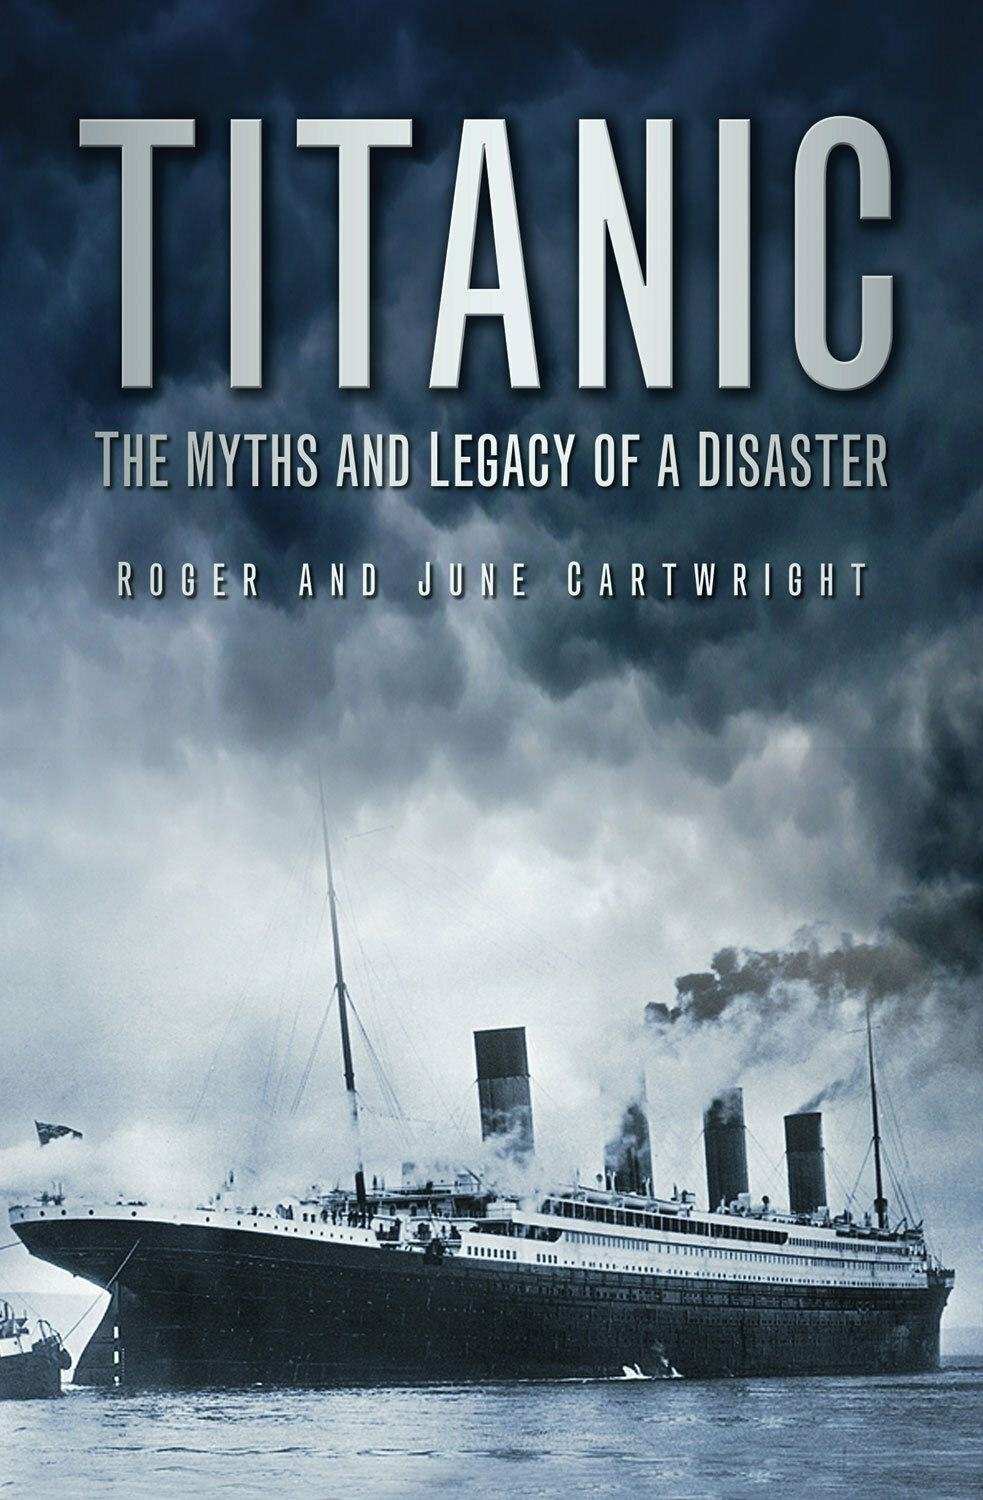 the titanic history of a disaster Shortly before midnight disaster struck the titanic an iceberg punctured five of the 16 compartments and the ship started to sink  brief history of the middle east.